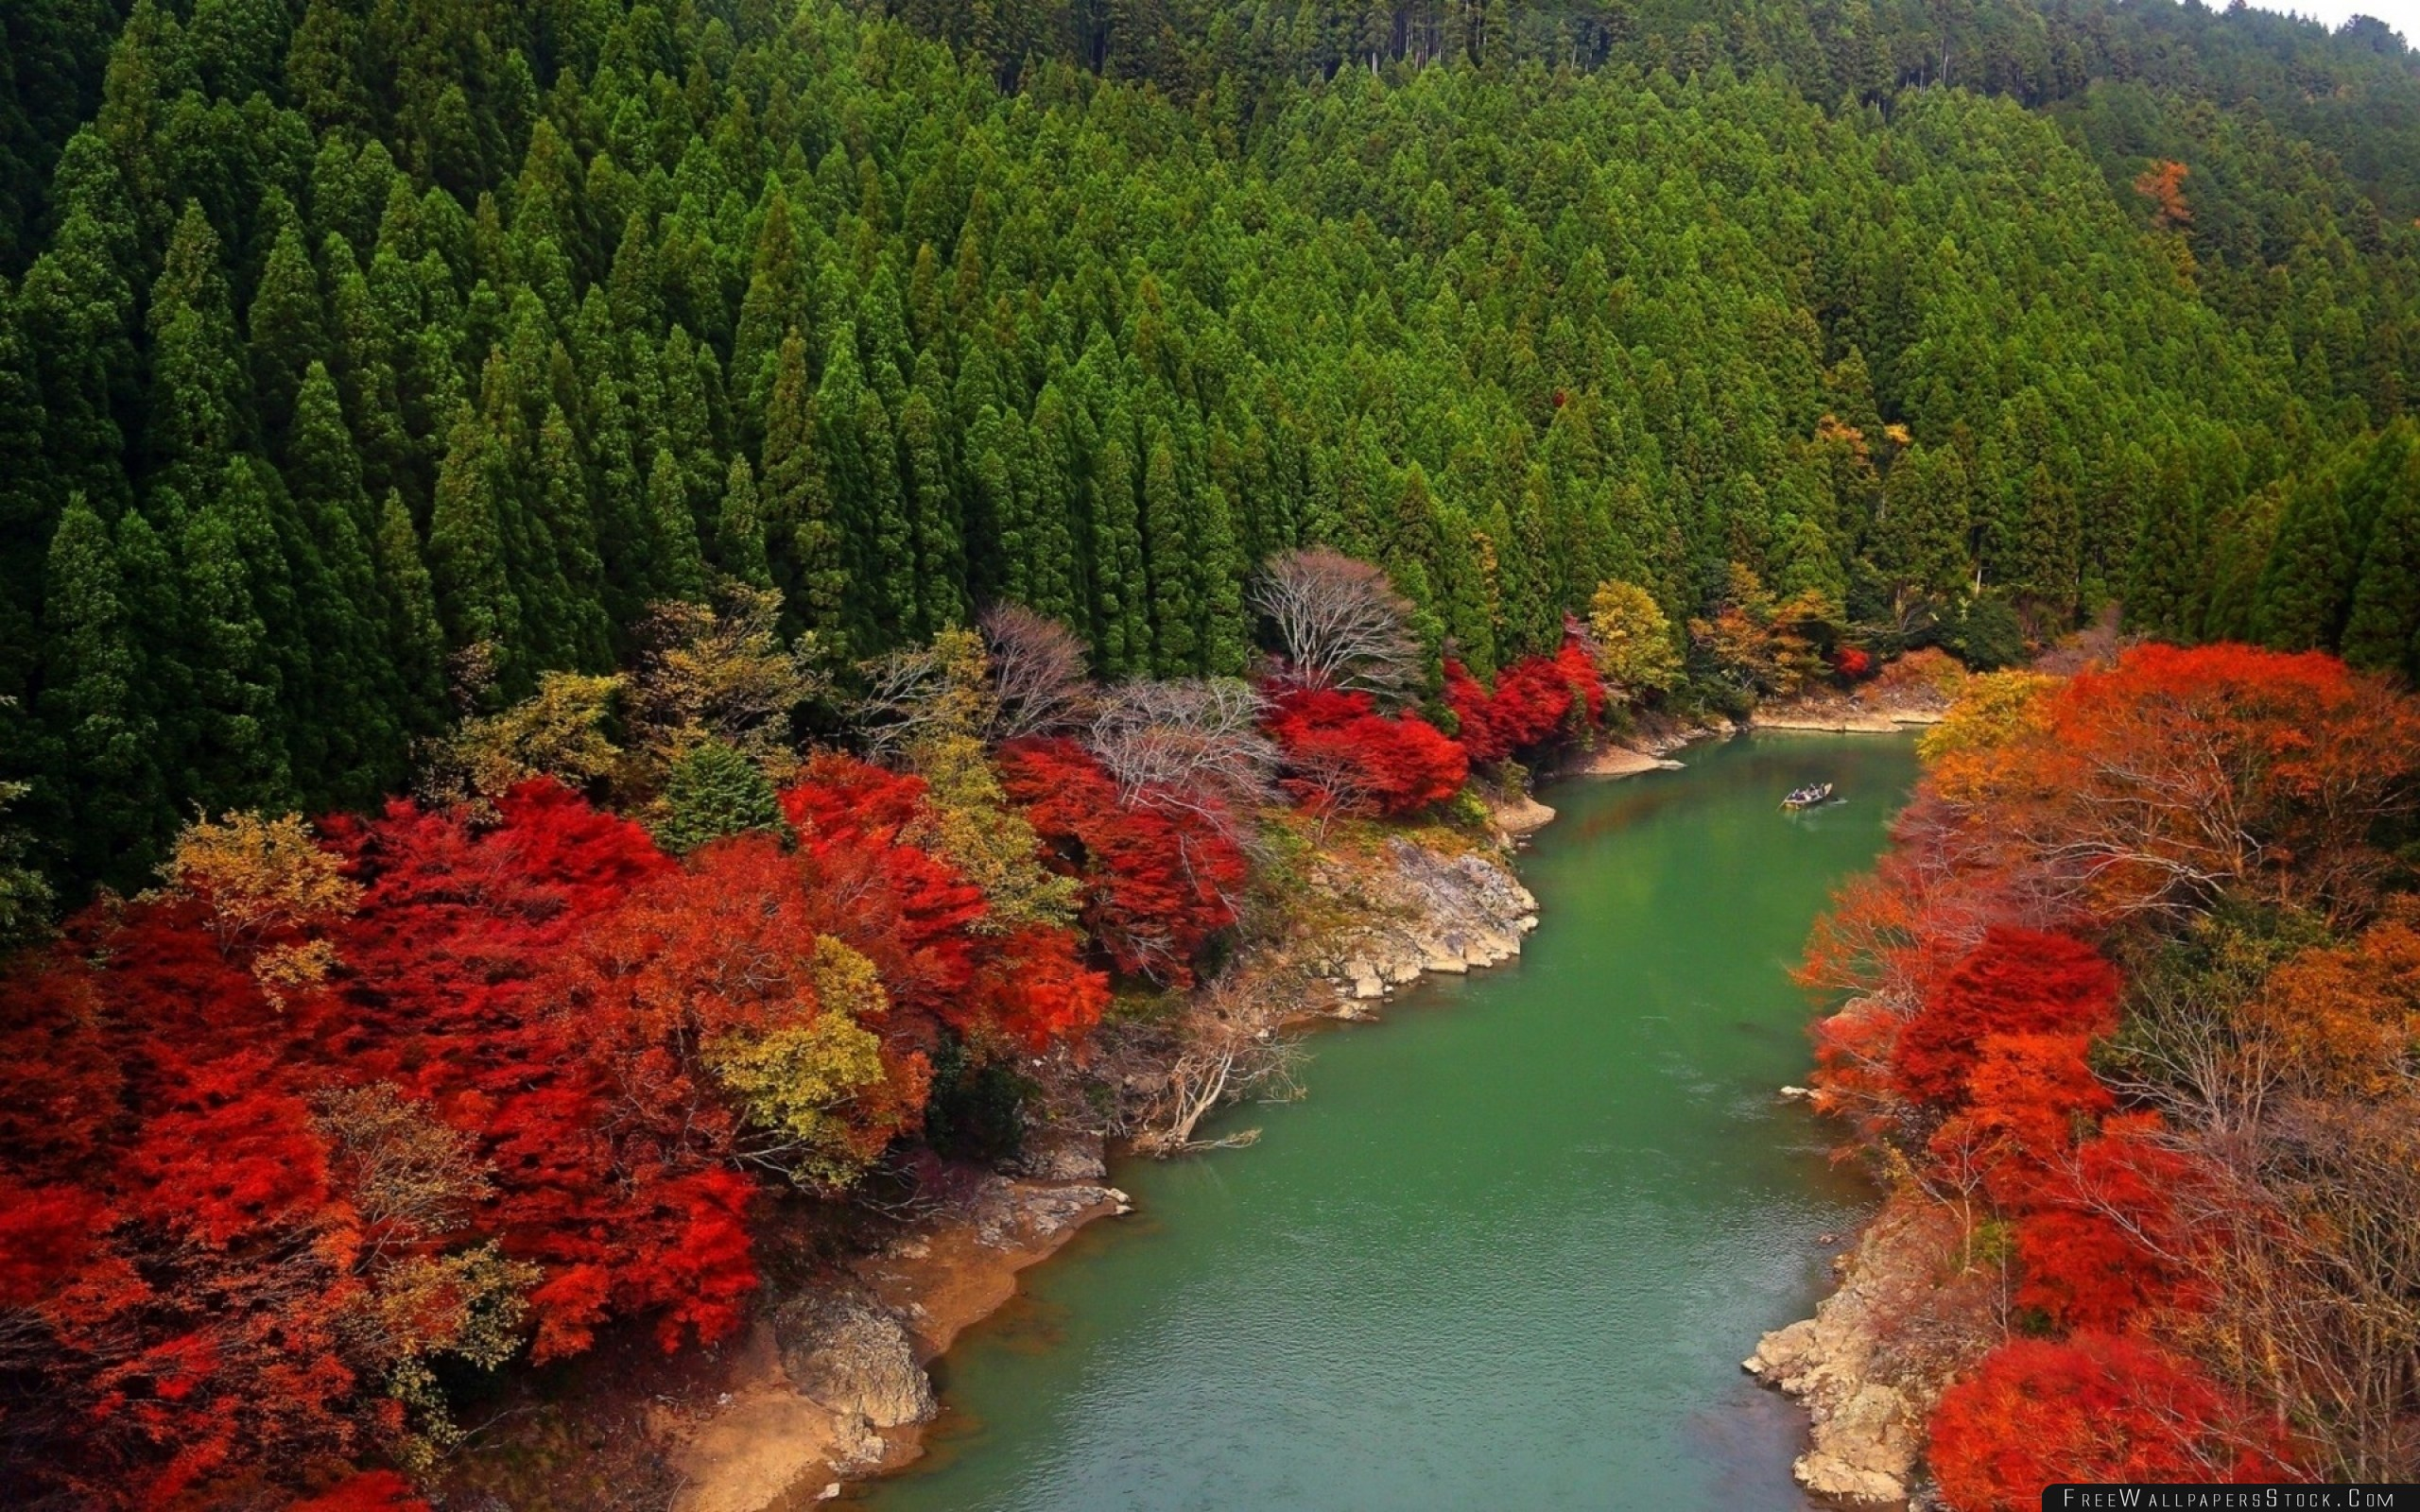 Download Free Wallpaper Autumn River Forest